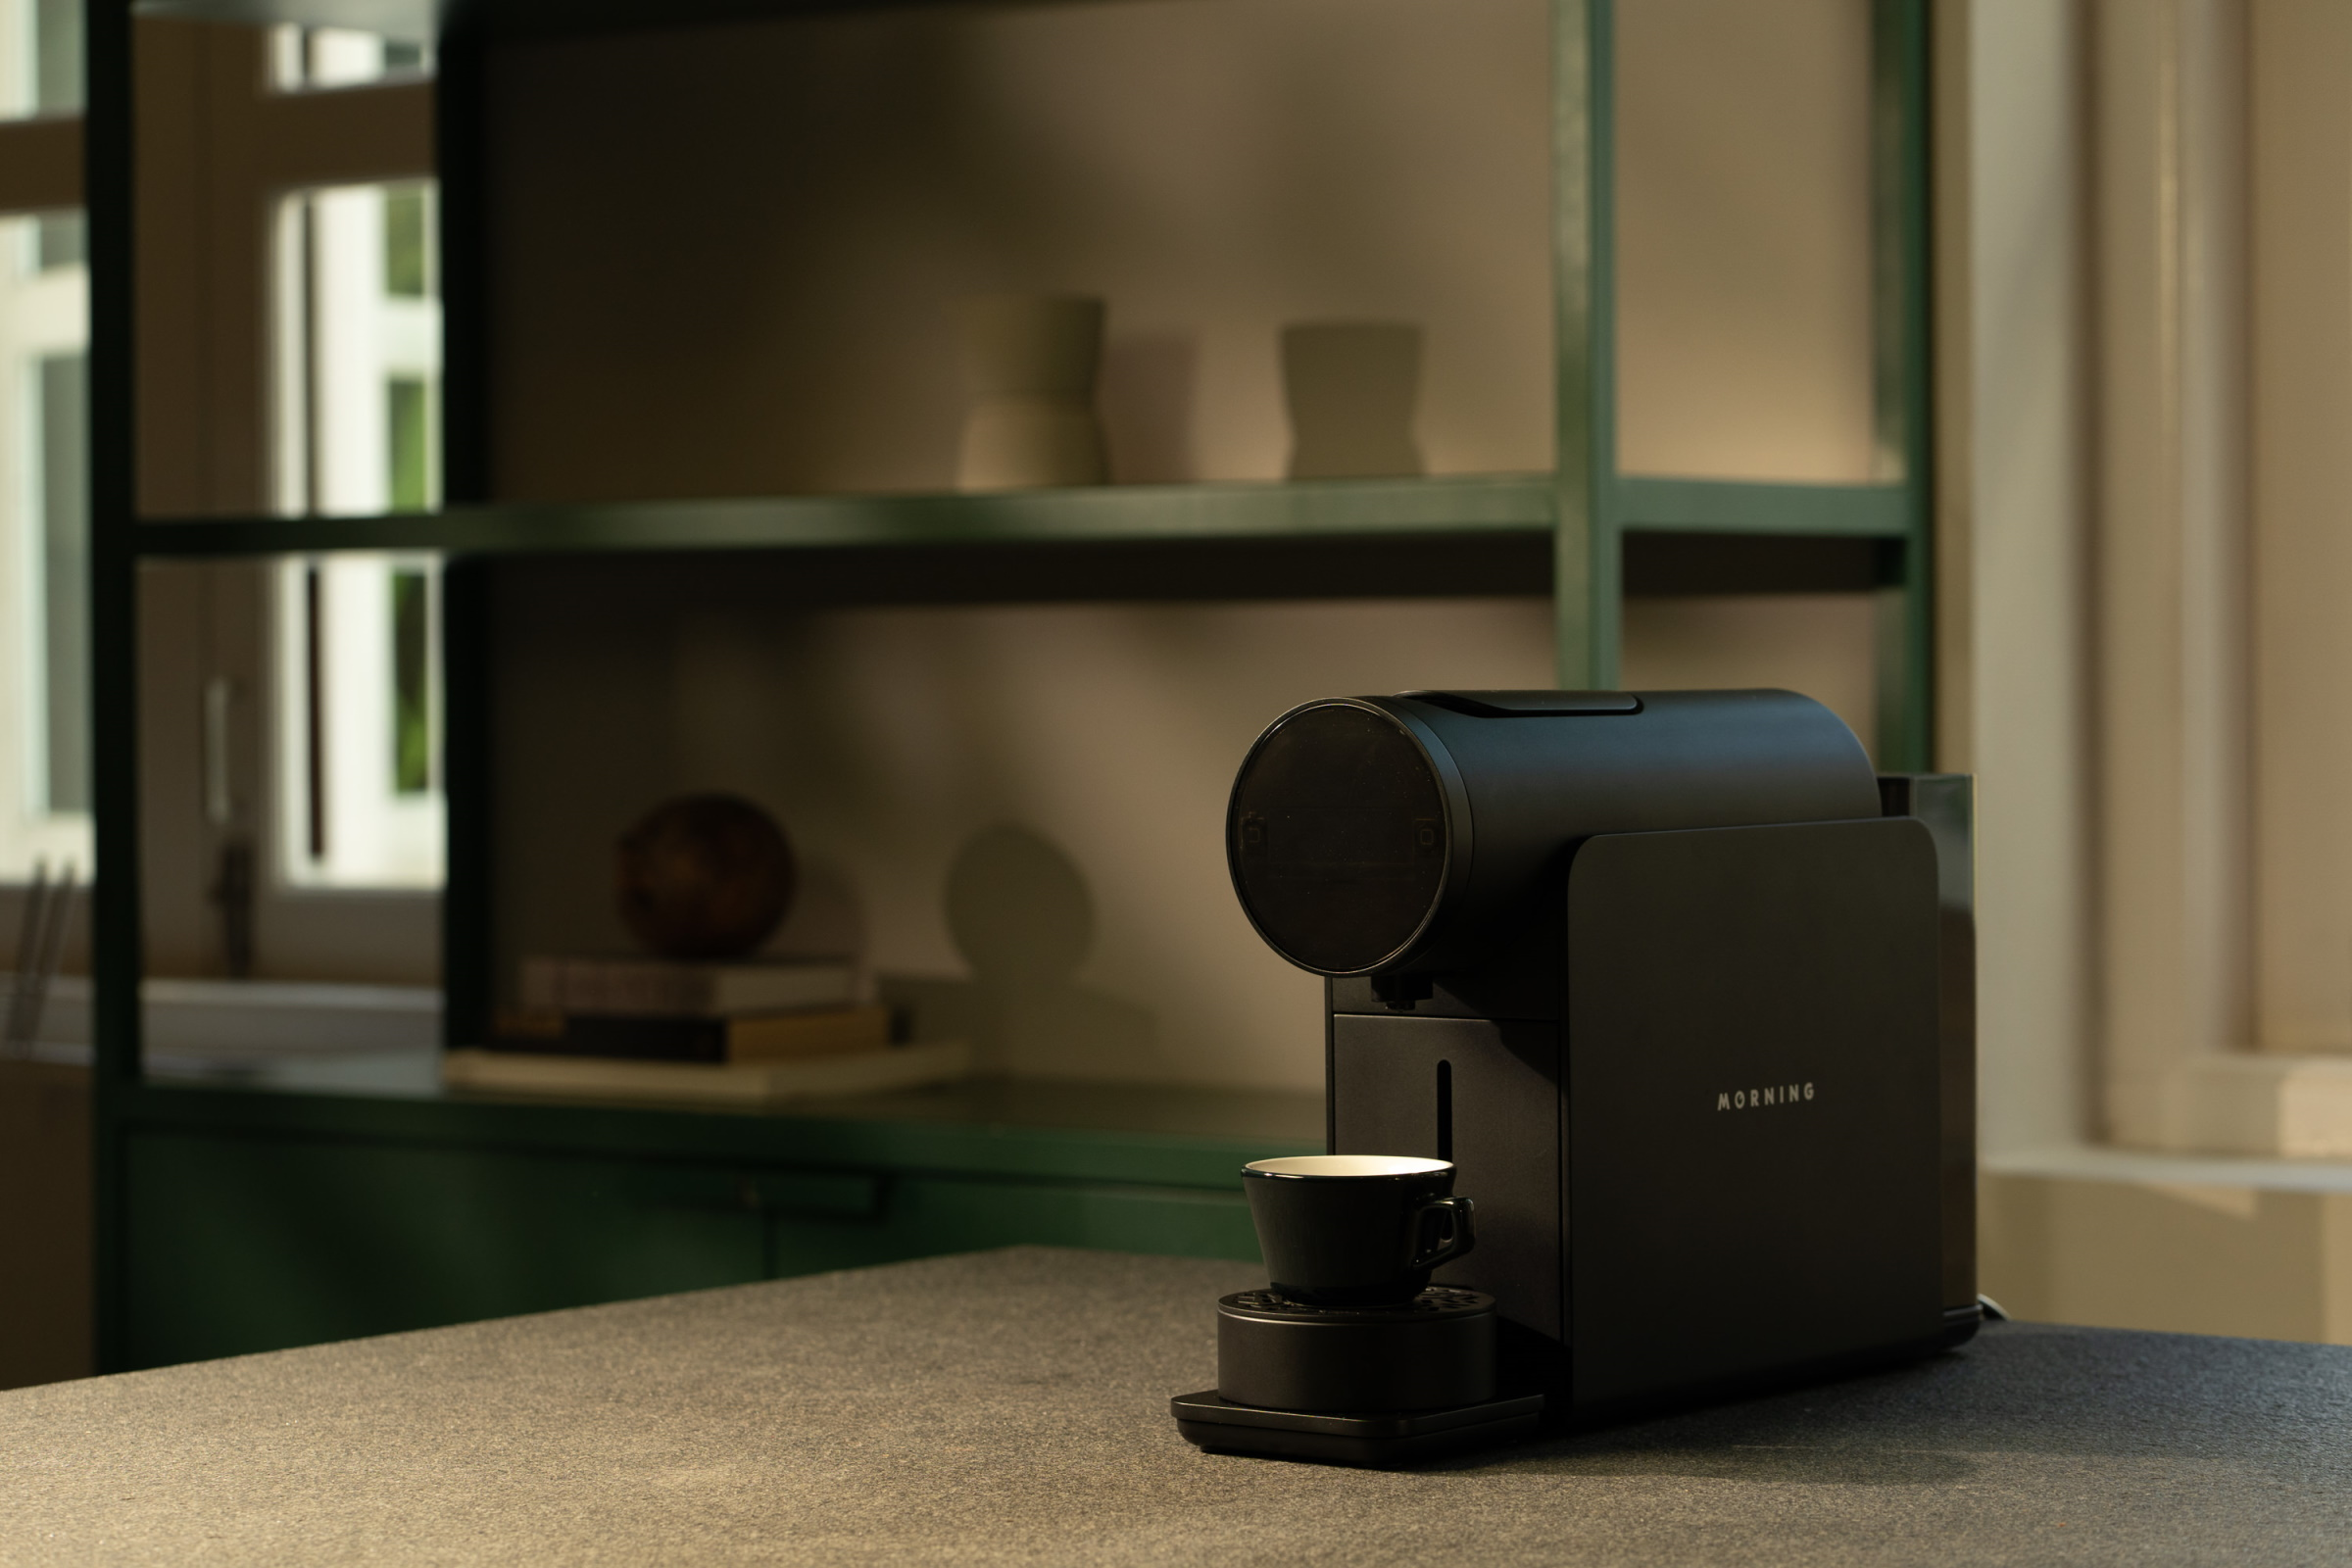 The Morning Machine Provides A Quick Way To Satisfy Your Coffee Fix